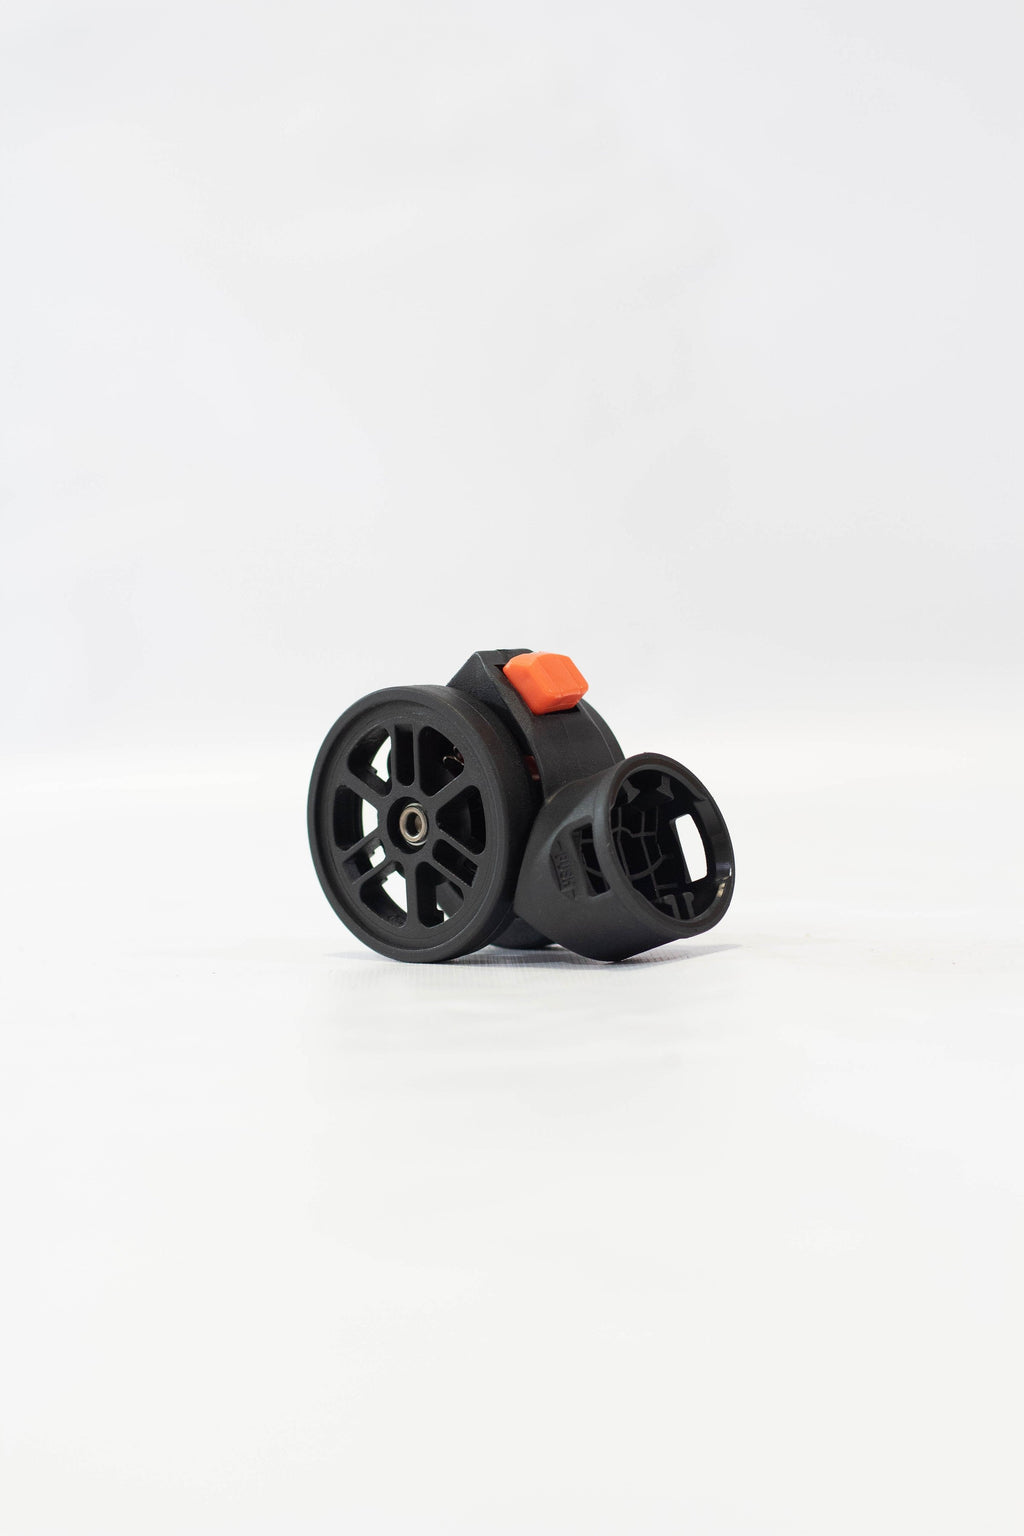 DivaDolly Locking Replaceable Wheel